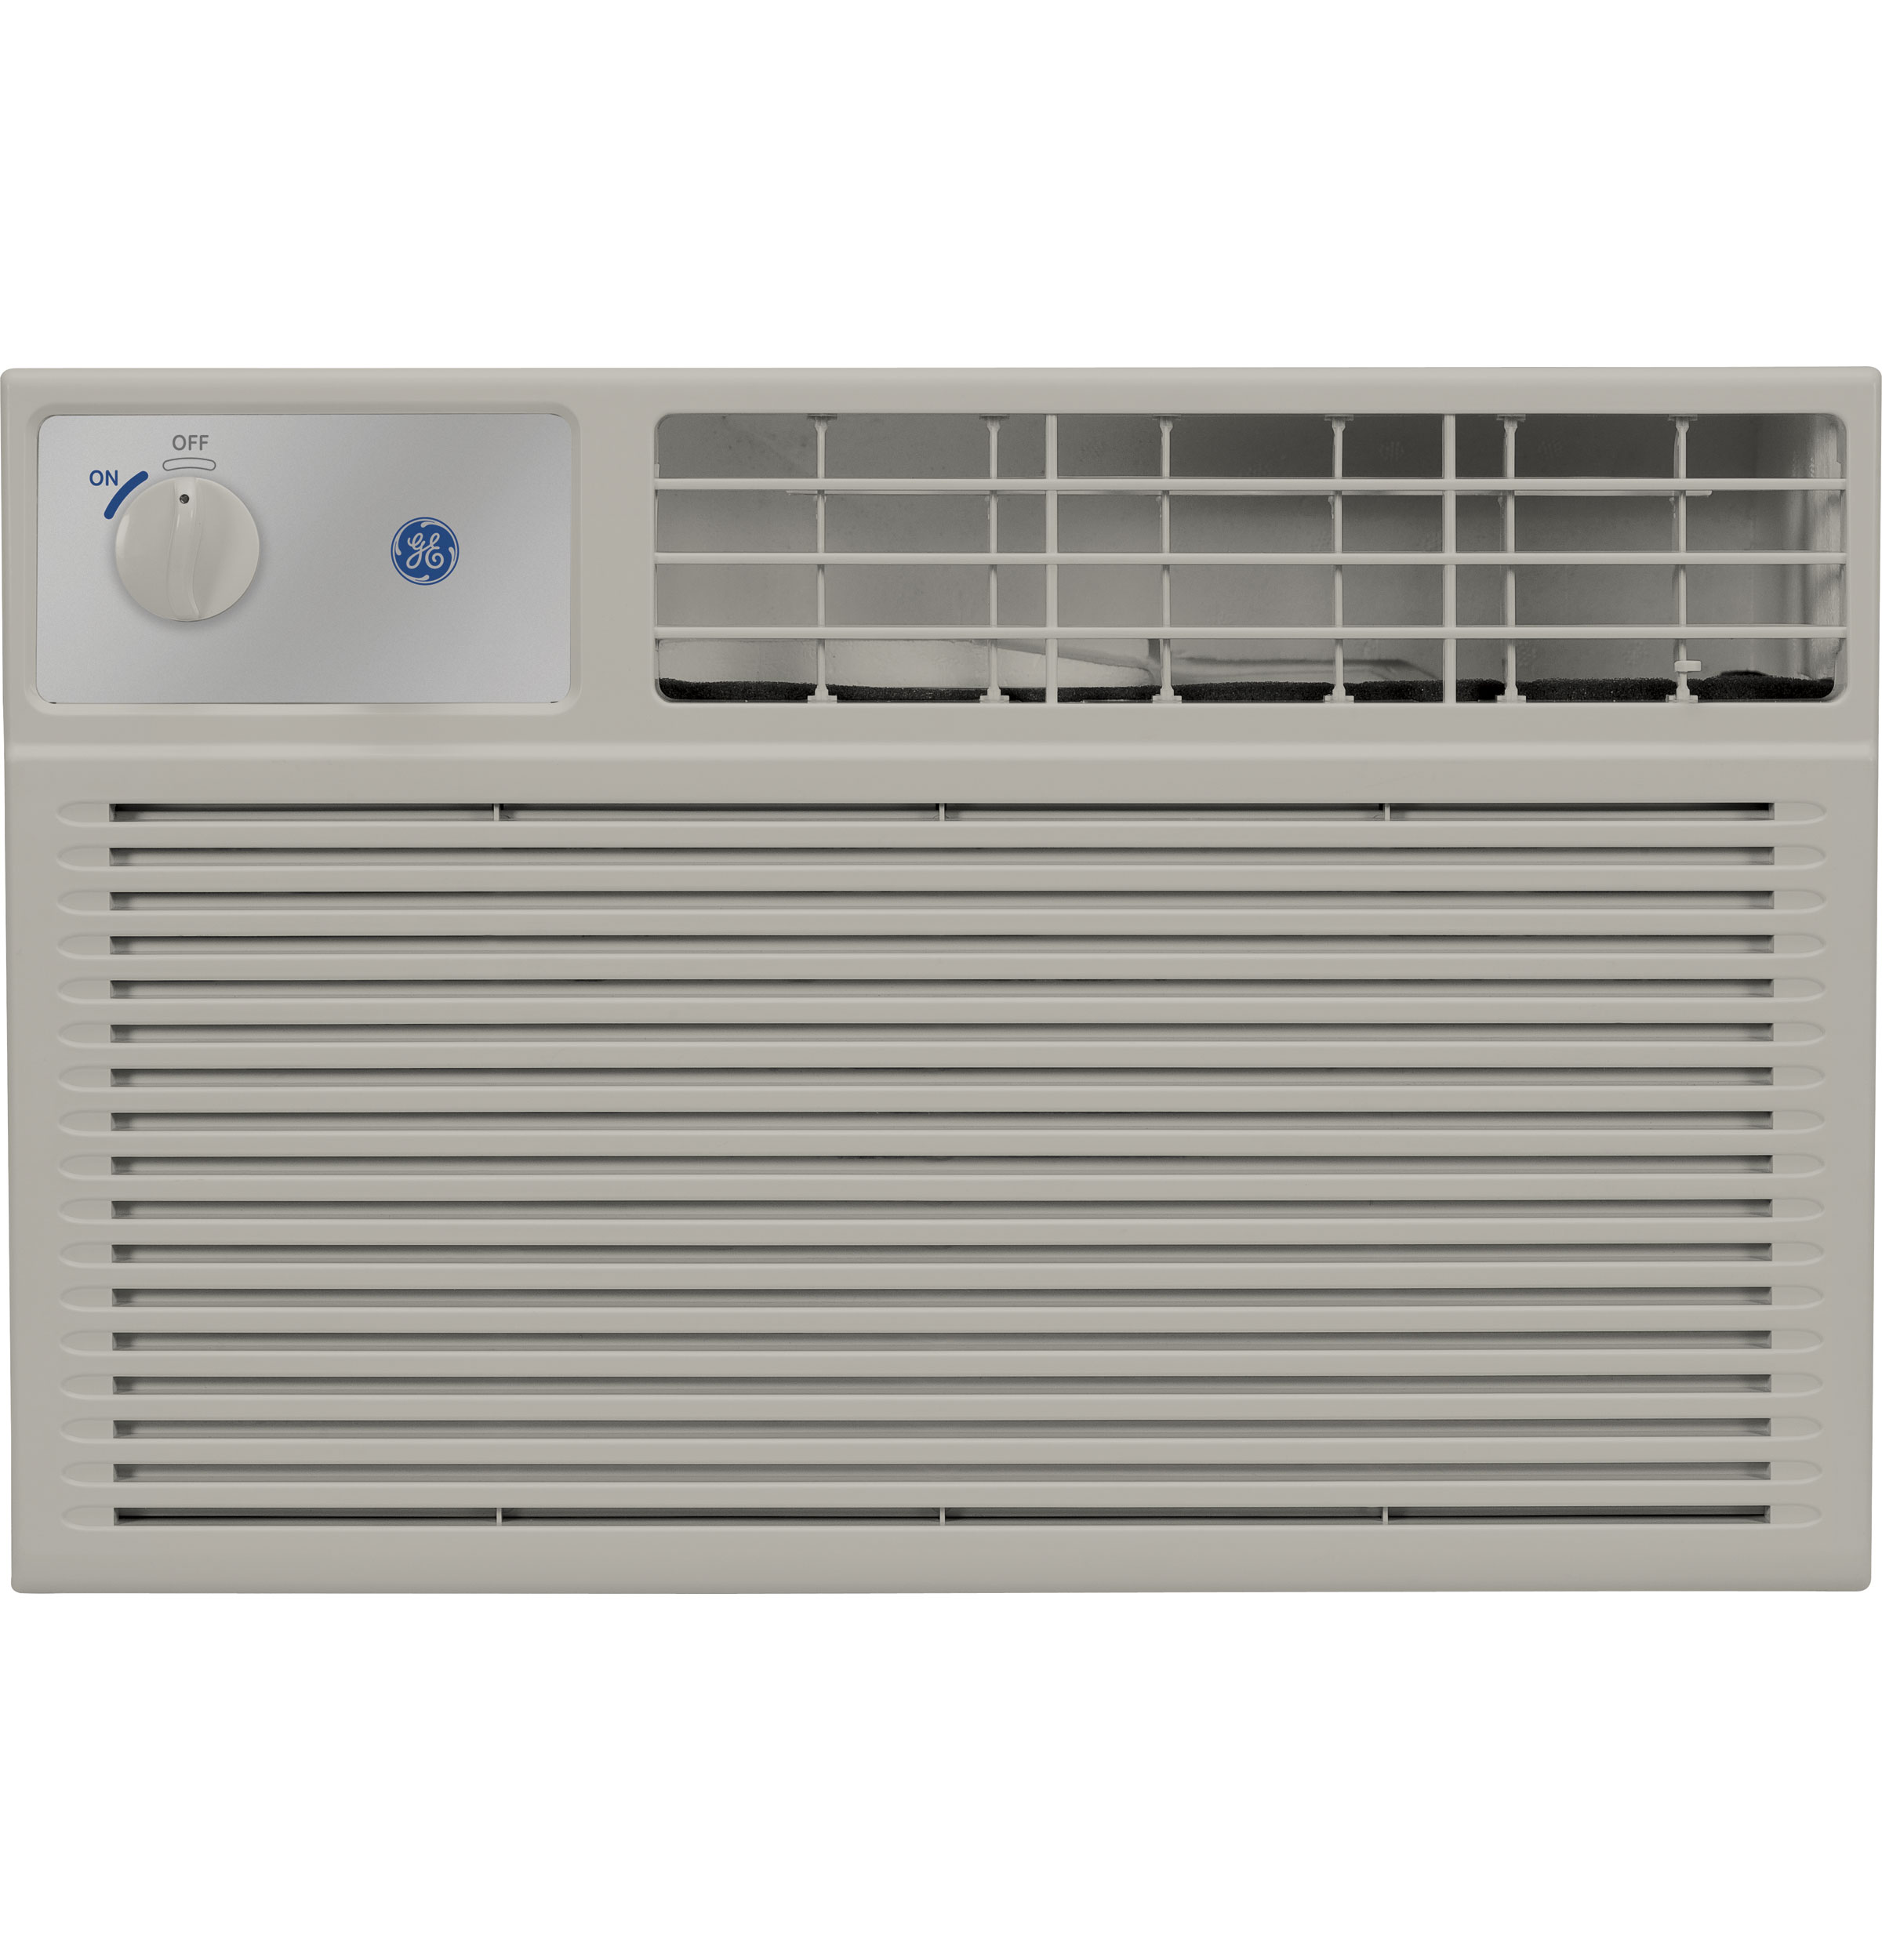 #24467C AES05LM GE® 115 Volt Room Air Conditioner The Monogram  Recommended 11287 Built In Room Air Conditioner pics with 2400x2500 px on helpvideos.info - Air Conditioners, Air Coolers and more